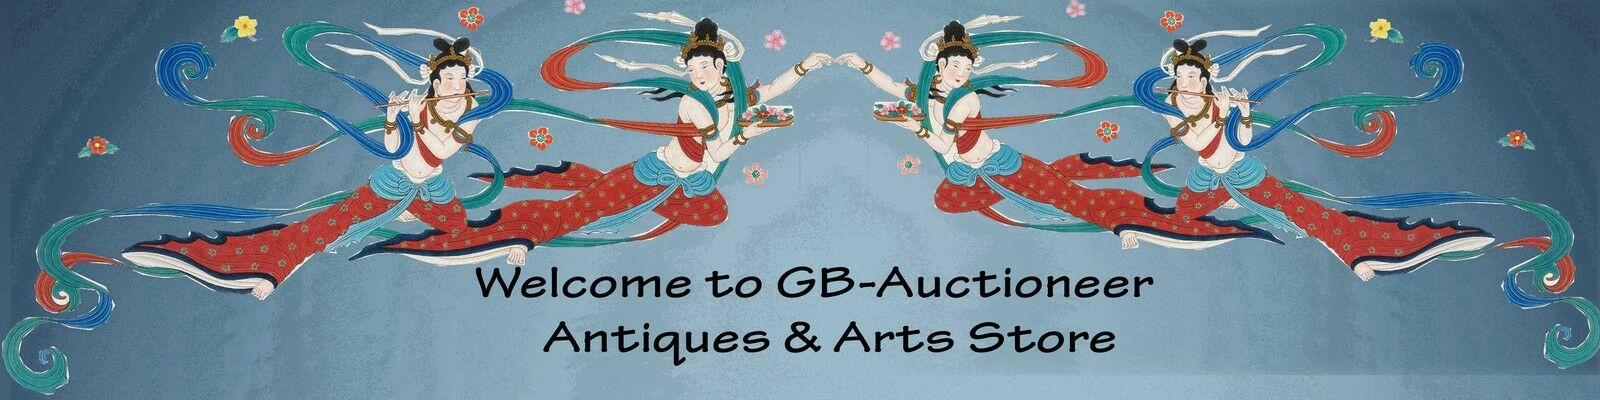 gb-auctioneer